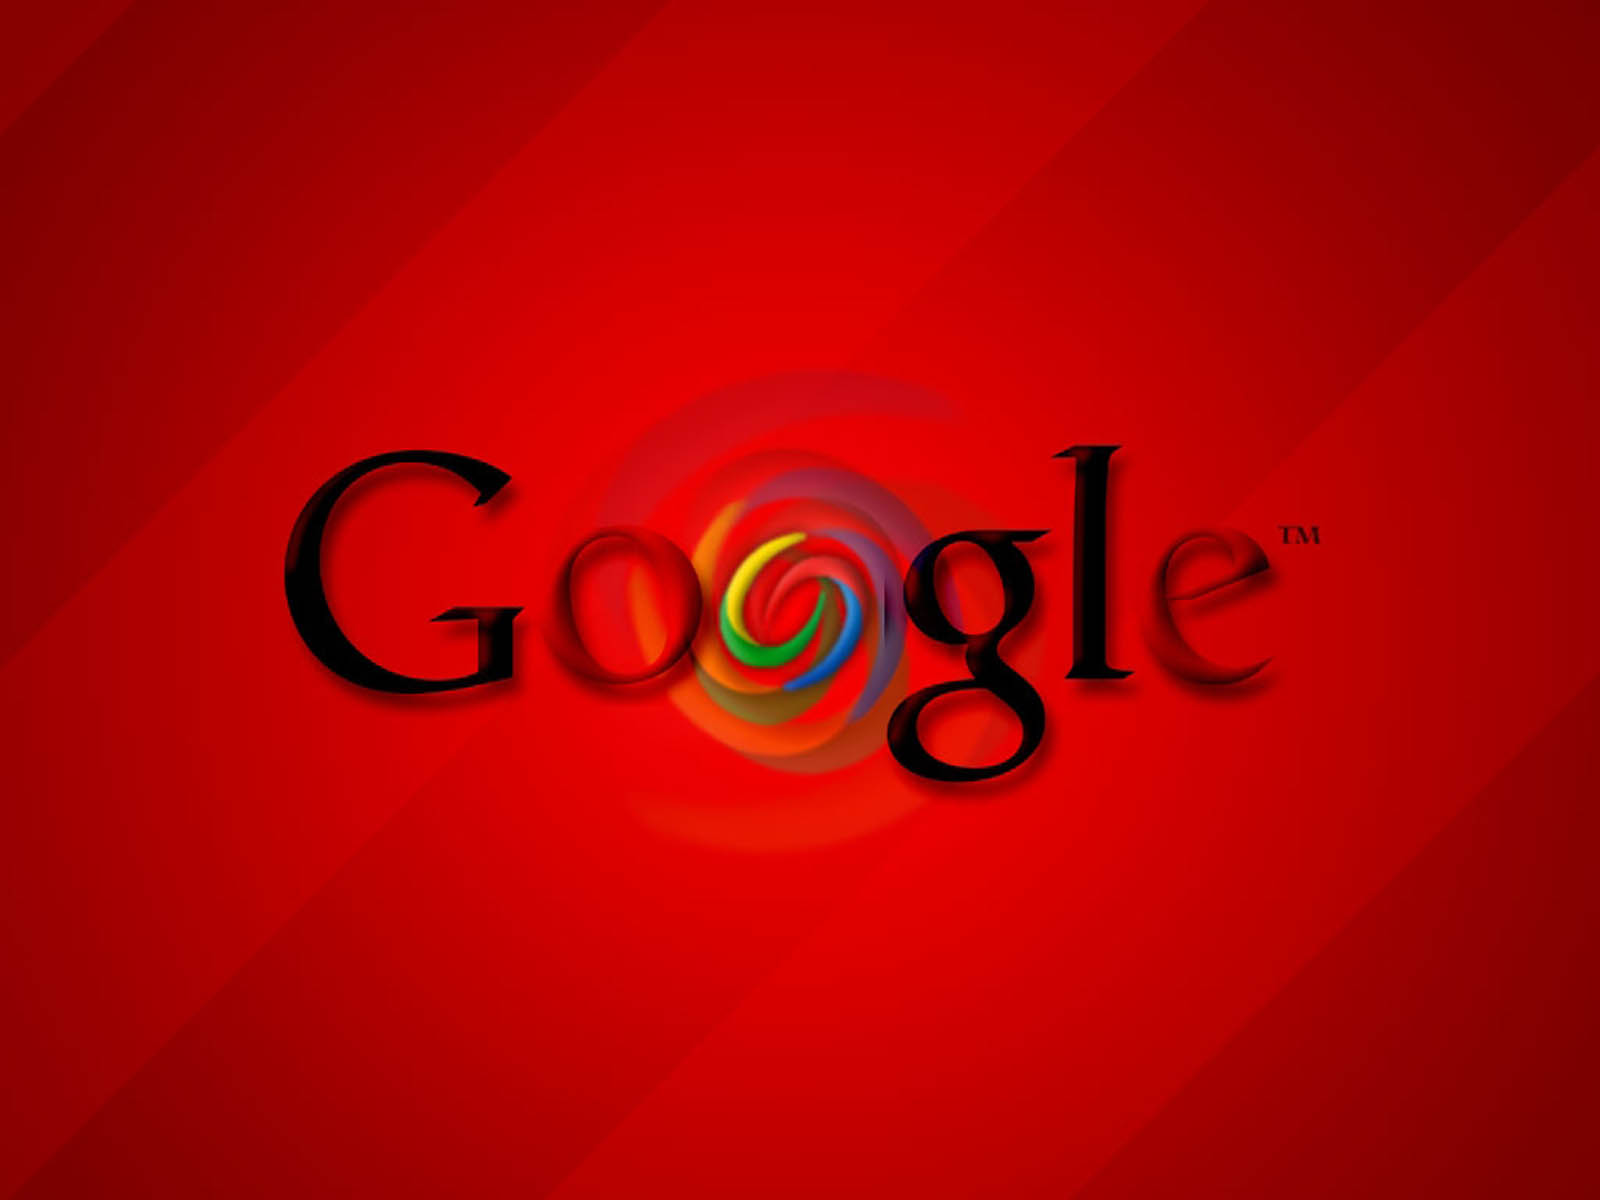 wallpaper: Free Google Wallpapers And Backgrounds